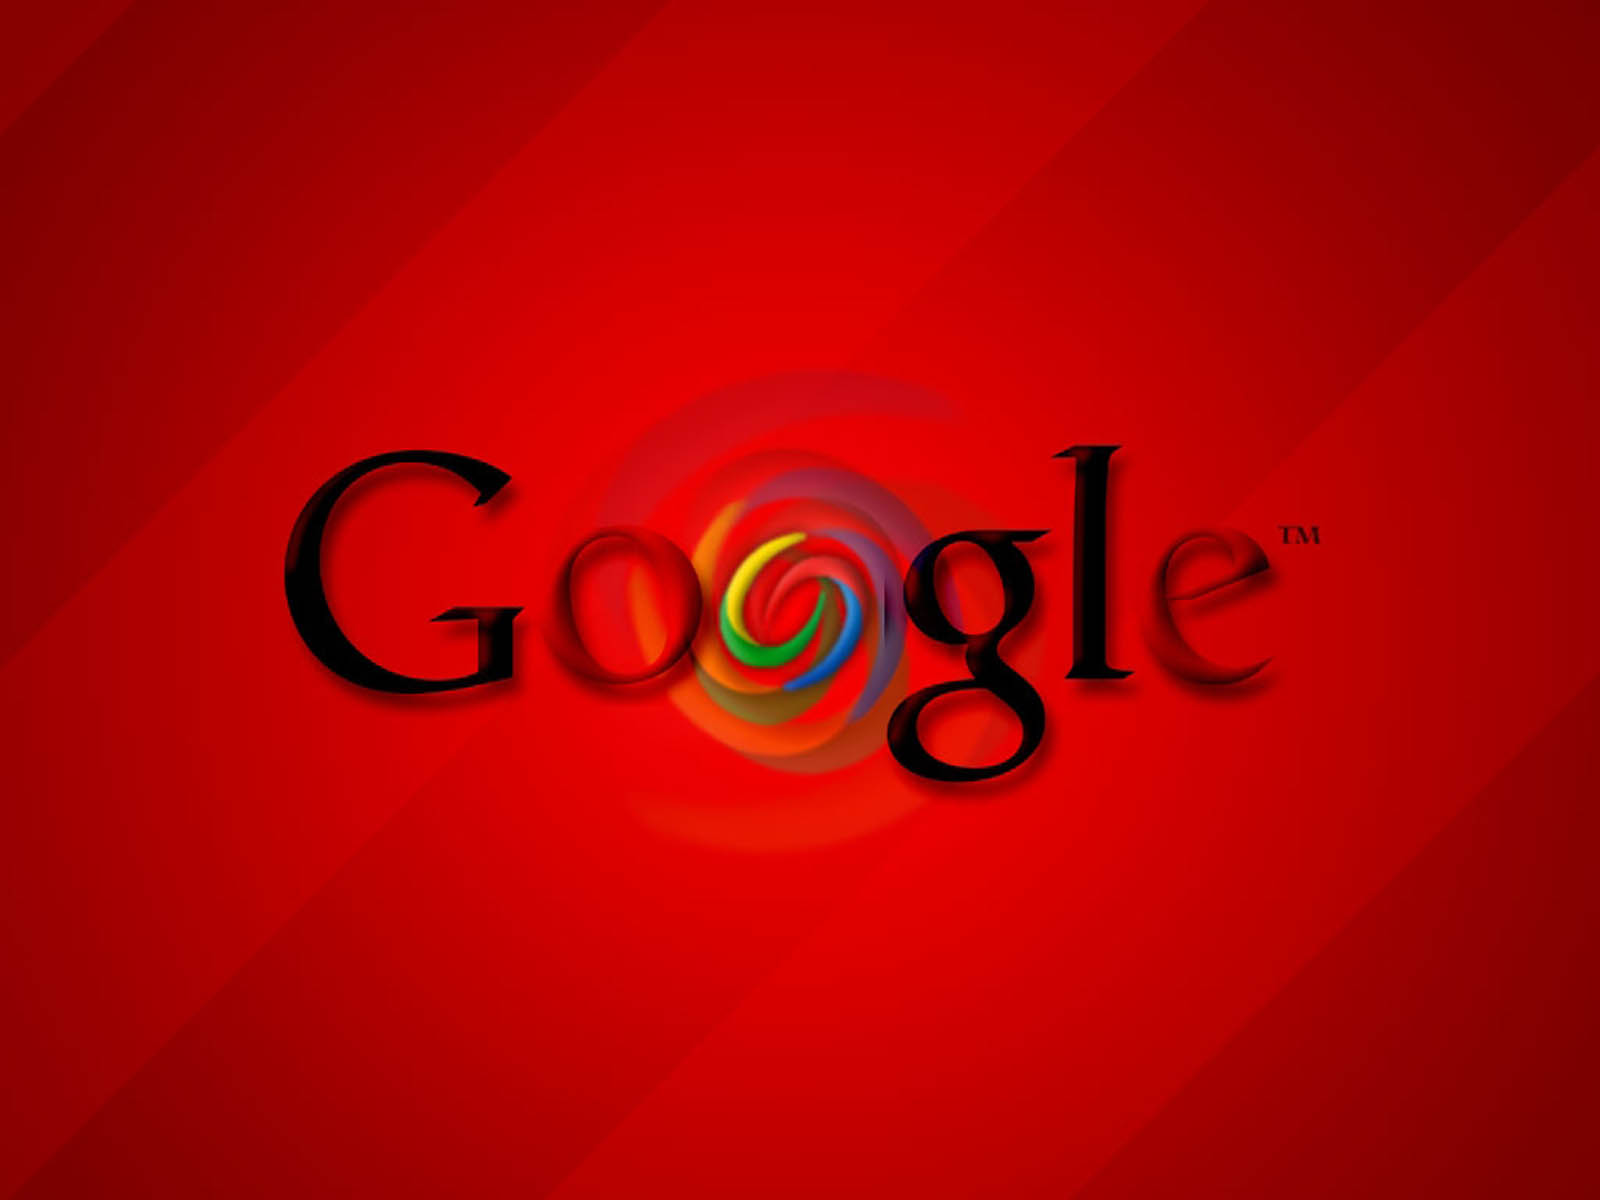 wallpaper: Free Google Wallpapers And Backgrounds